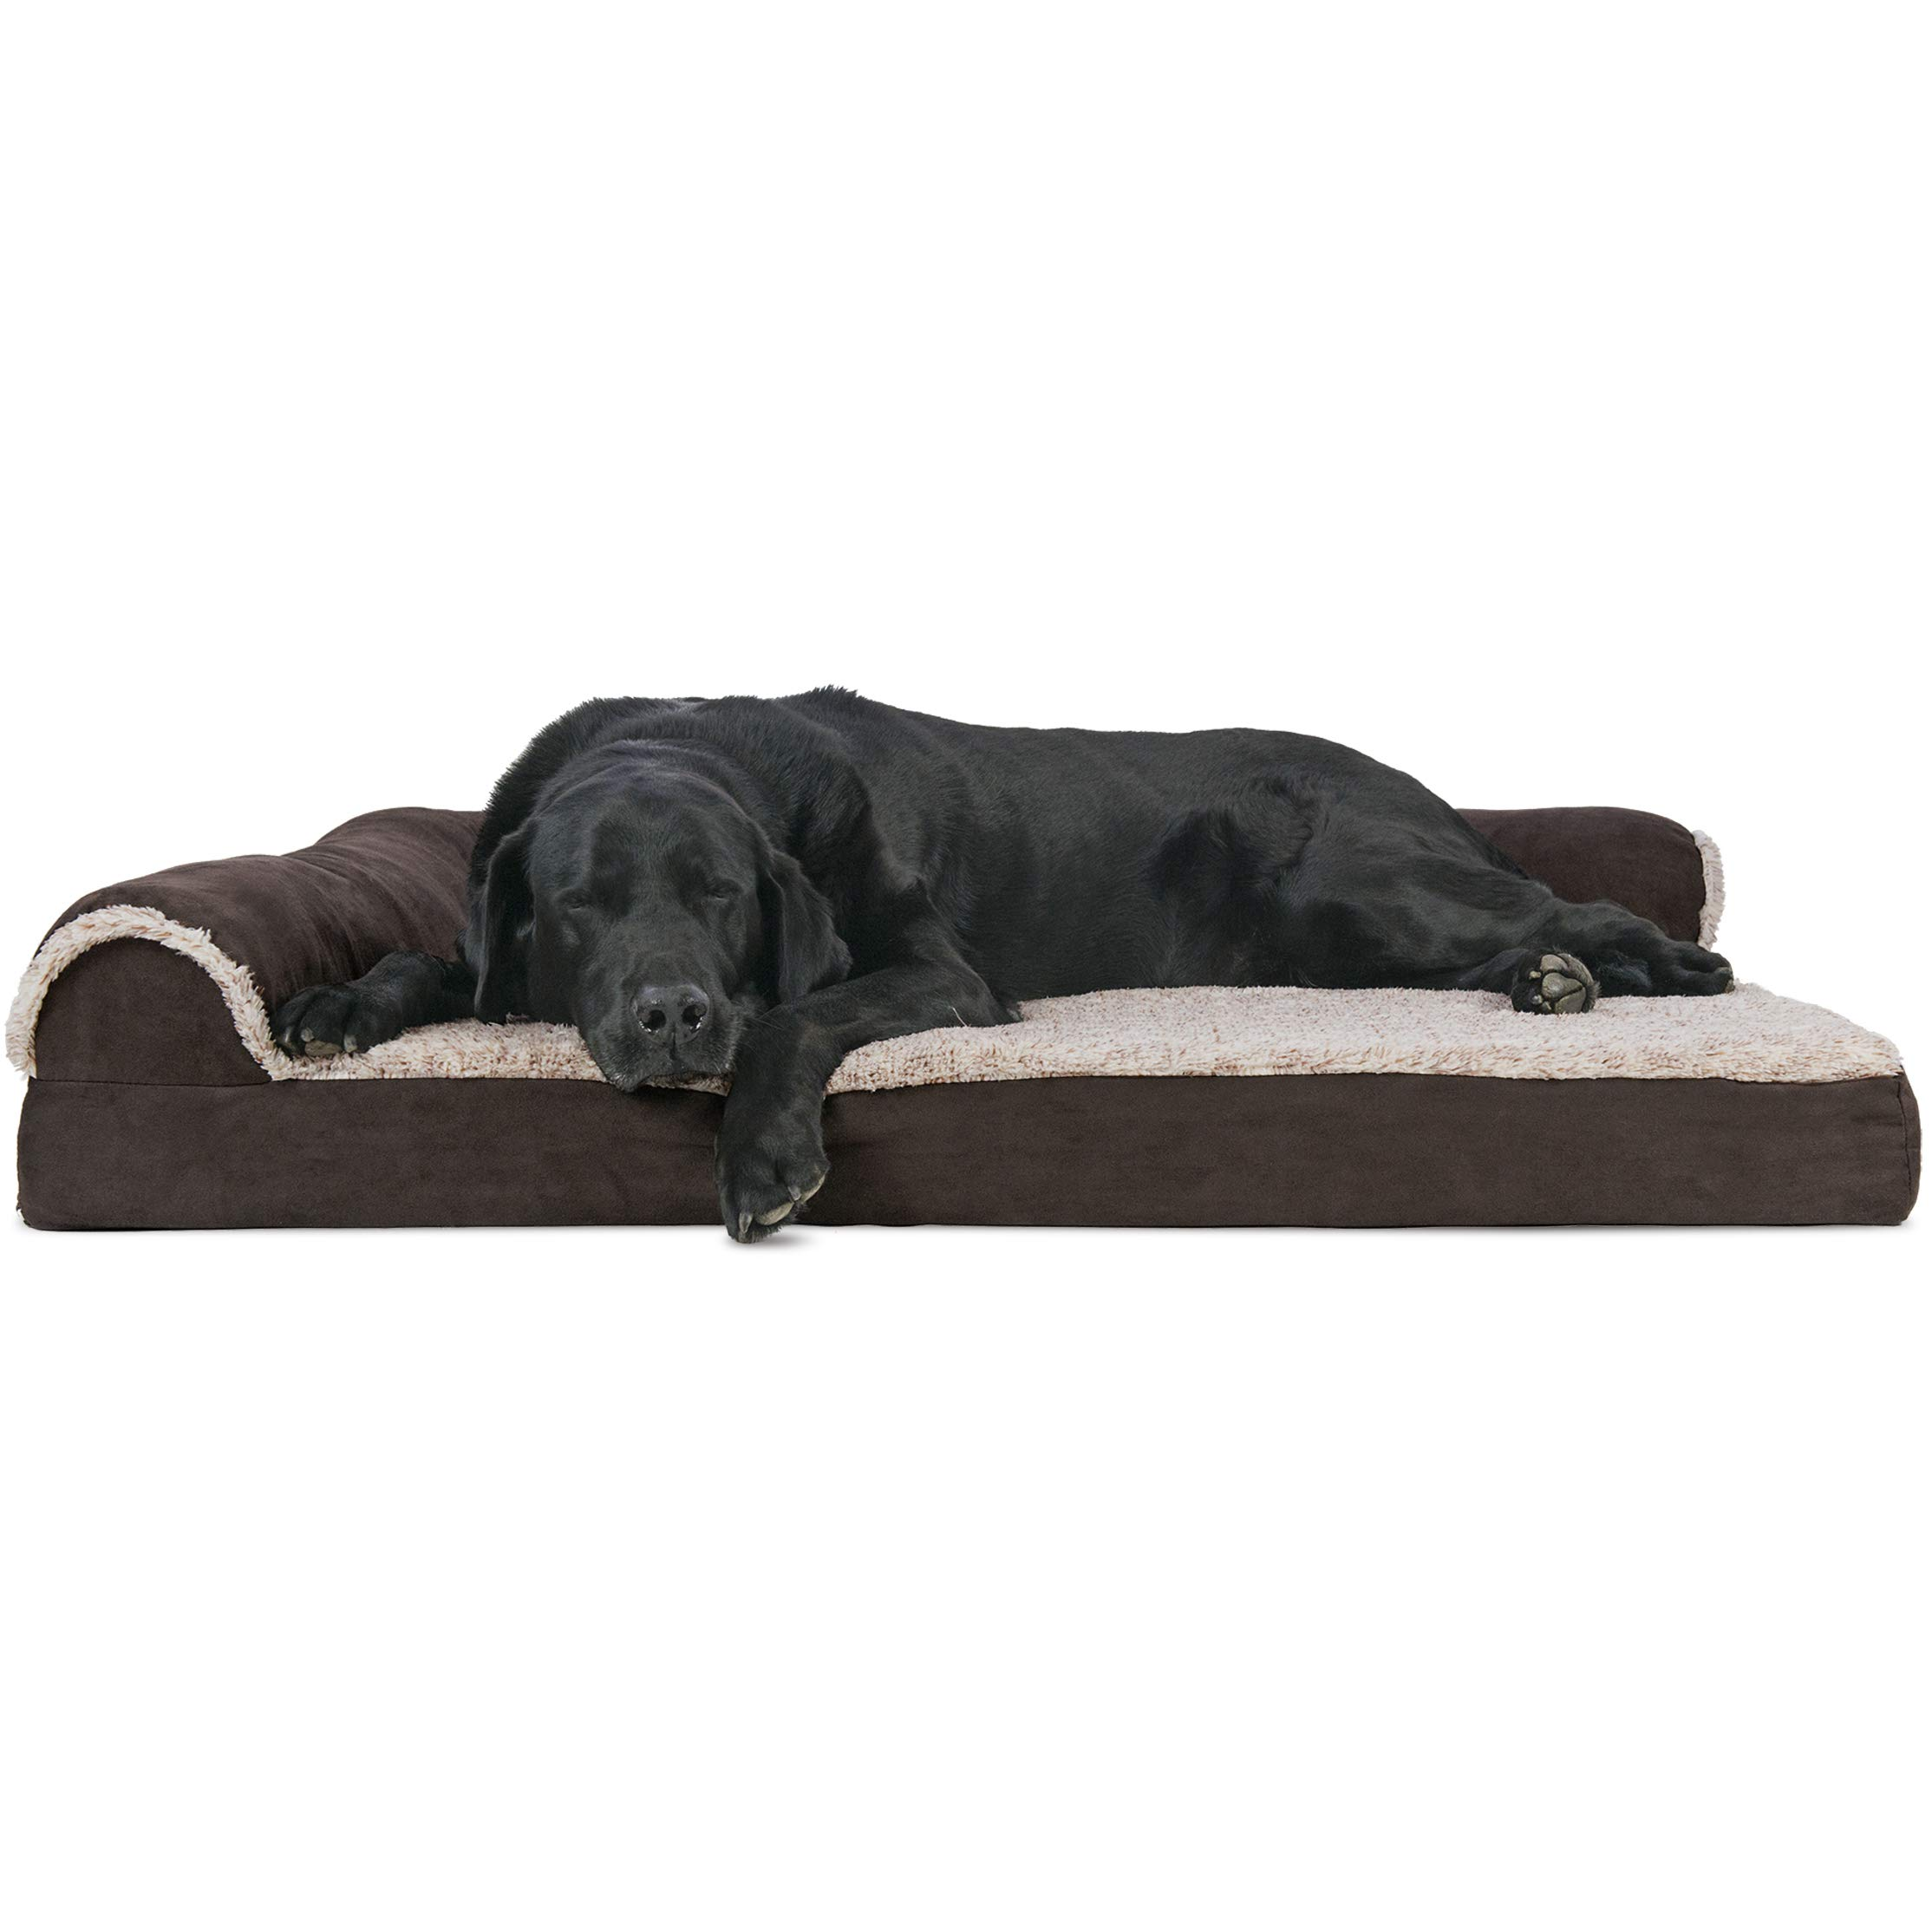 Furhaven Pet Dog Bed   Deluxe Orthopedic Two-Tone Plush Faux Fur & Suede L Shaped Chaise Lounge Living Room Corner Couch Pet Bed w/ Removable Cover for Dogs & Cats, Espresso, Jumbo by Furhaven